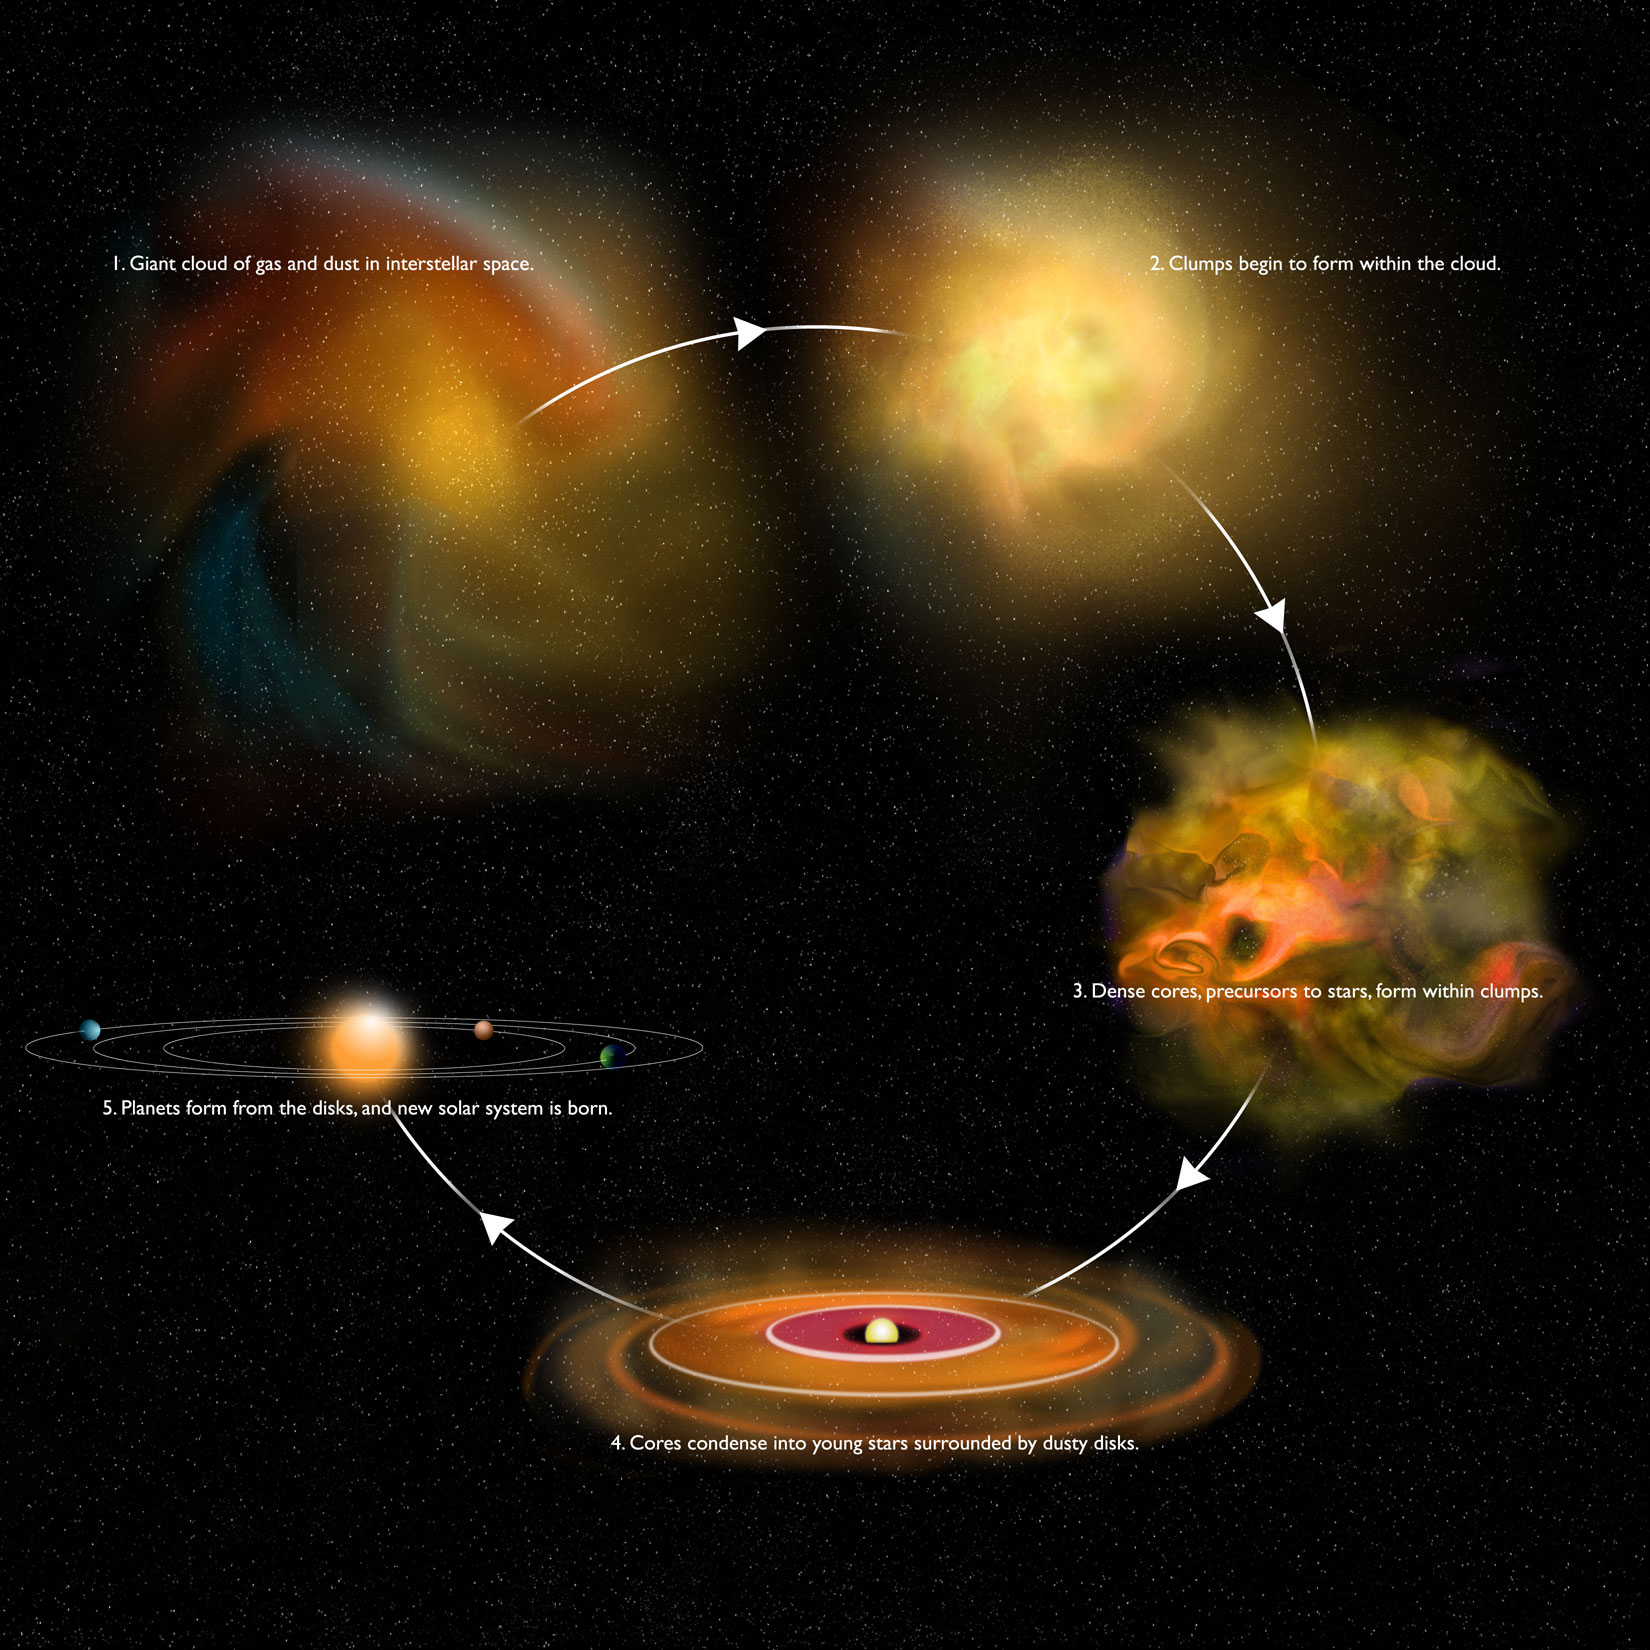 Astronomers get rare peek at early stage of star formation ccuart Image collections